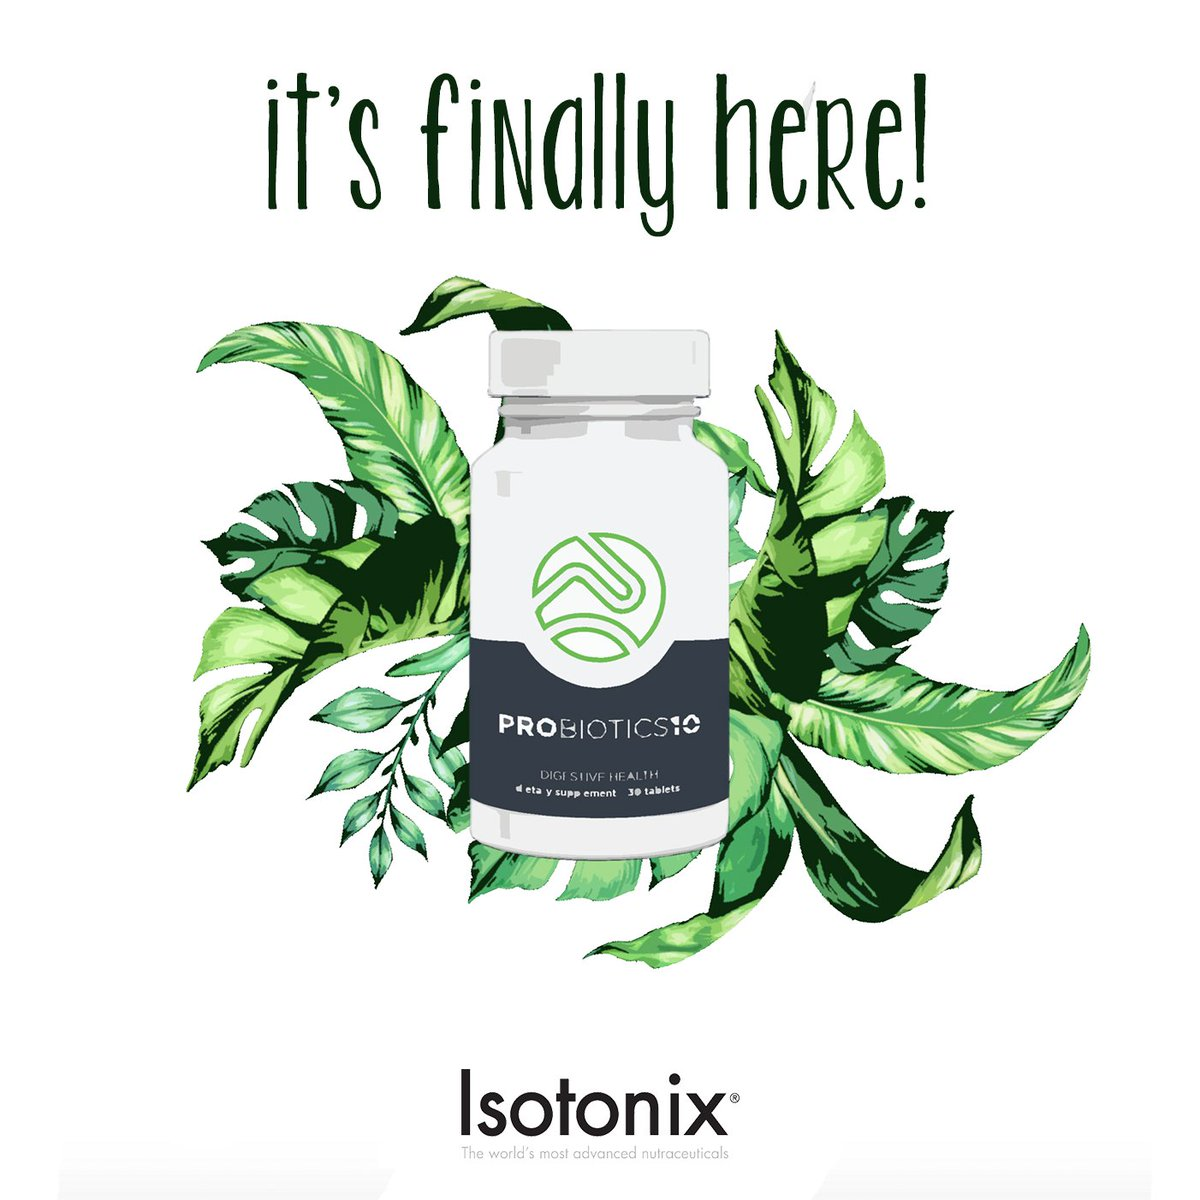 Say hello to the all-new addition to your health + wellness essentials - #Probiotics10 by @isotonix!  Offers 10 of the most studied probiotic strains, utilizes the unique benefits of each to synergistically support a healthy balance from the inside out! #Isotonix